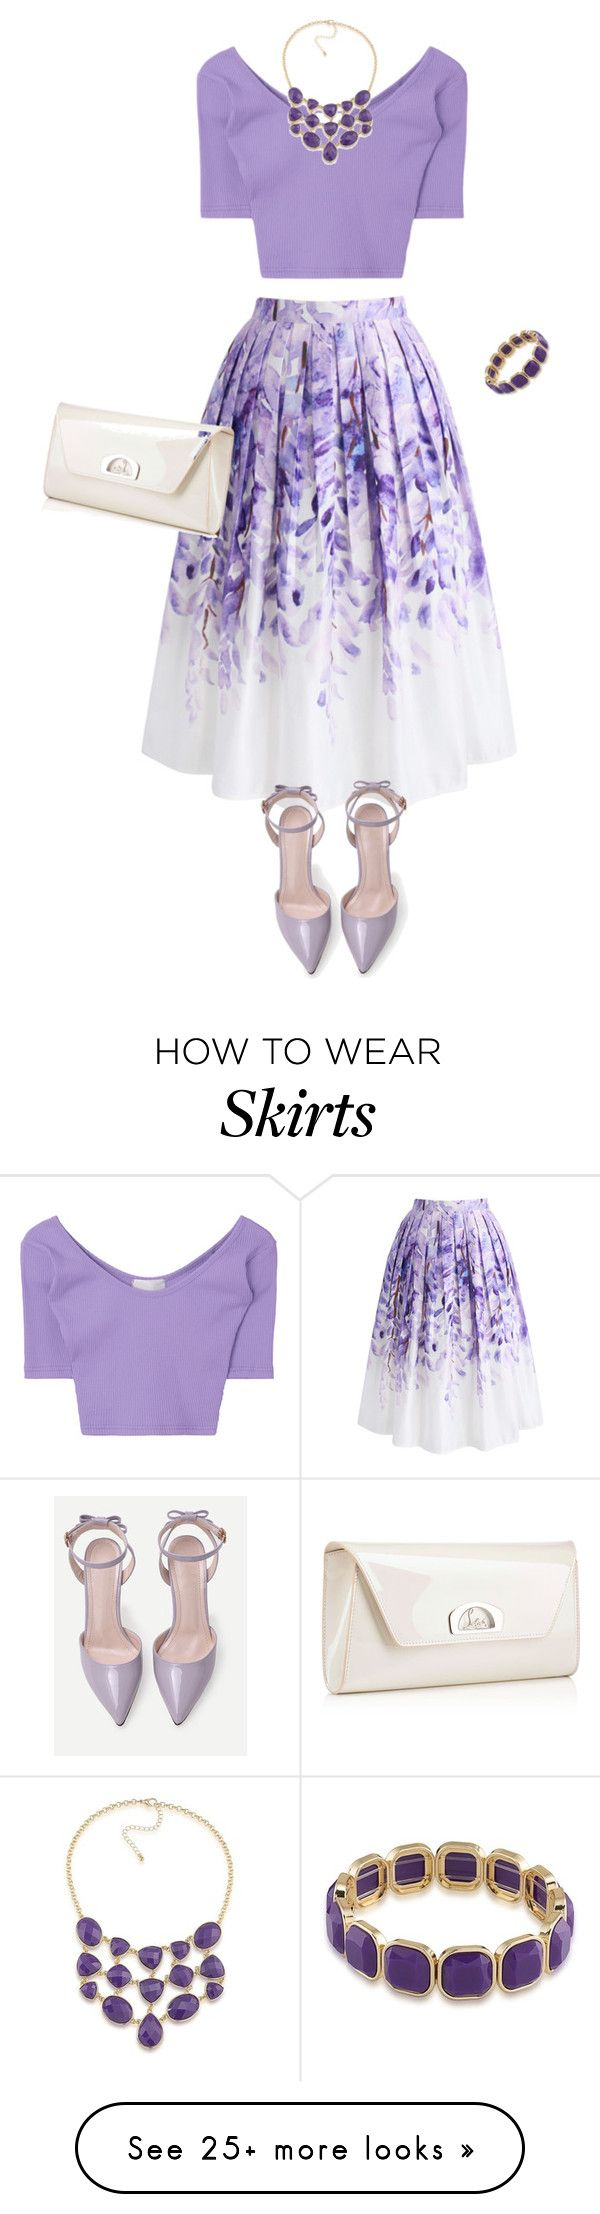 """outfit 6138"" by natalyag on Polyvore featuring Chicwish, 1st & Gorgeous by Carolee and Christian Louboutin"